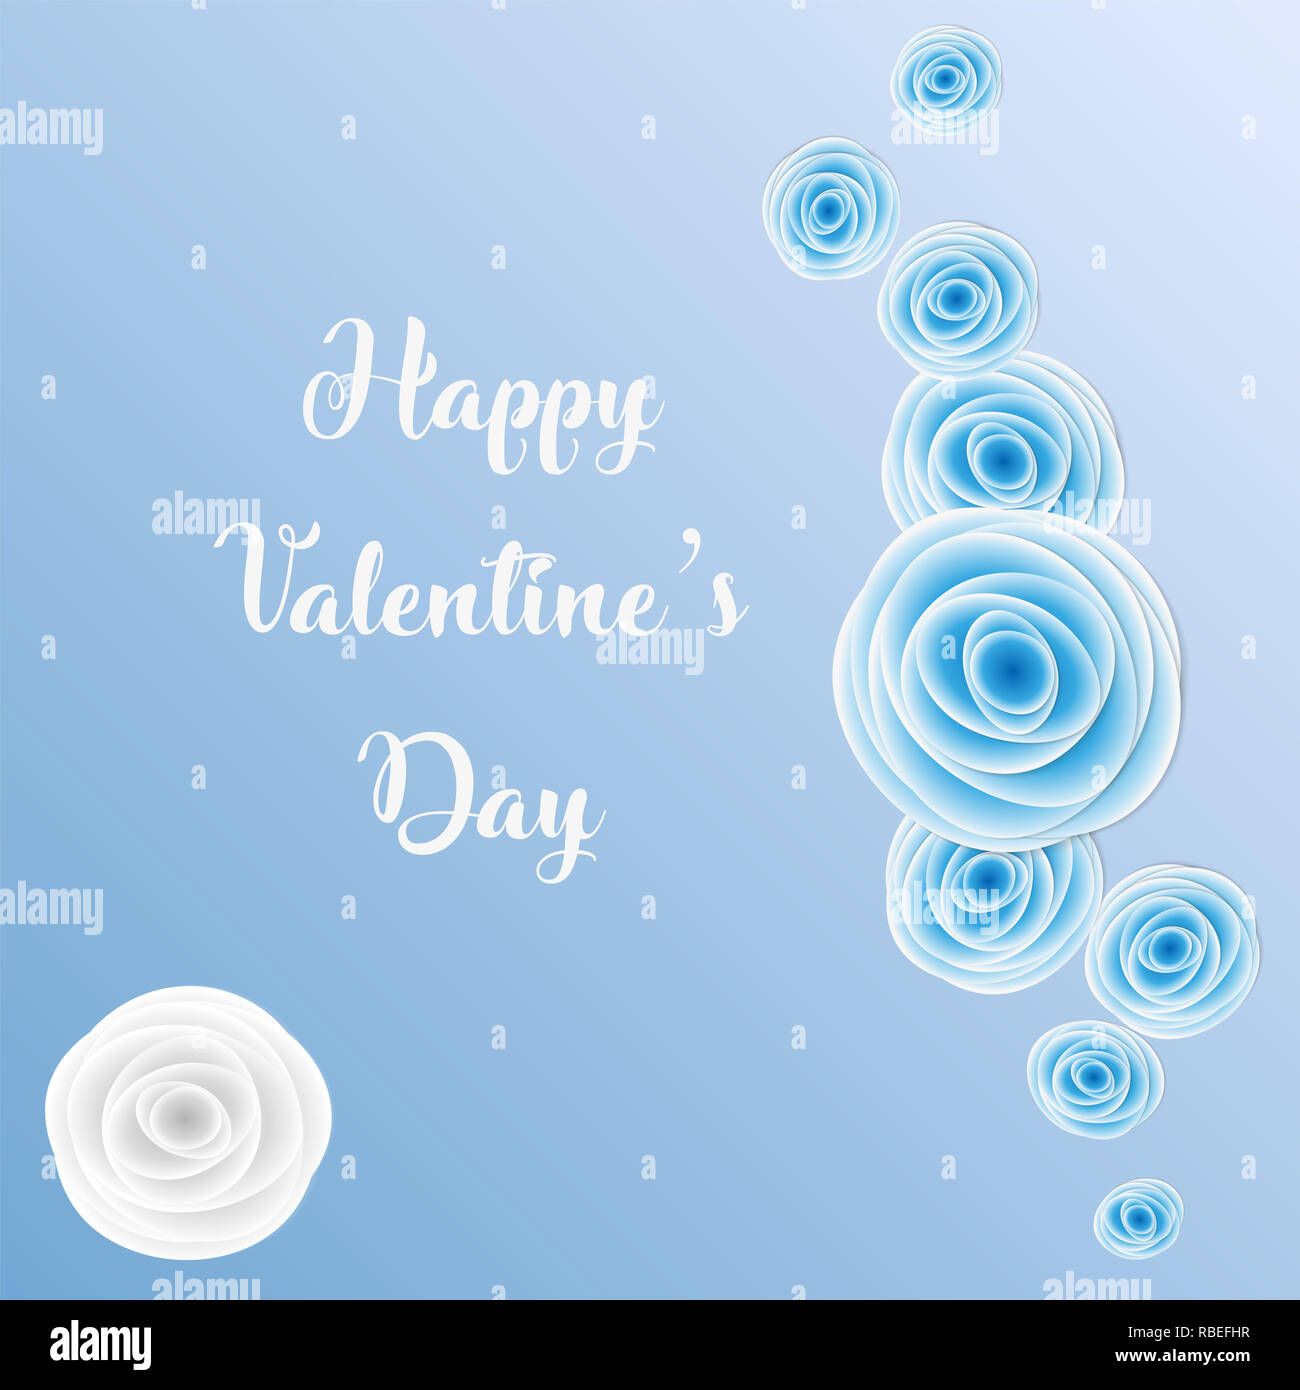 9503e134ebf Happy Valentine's Day greeting card with blue rose light blue background